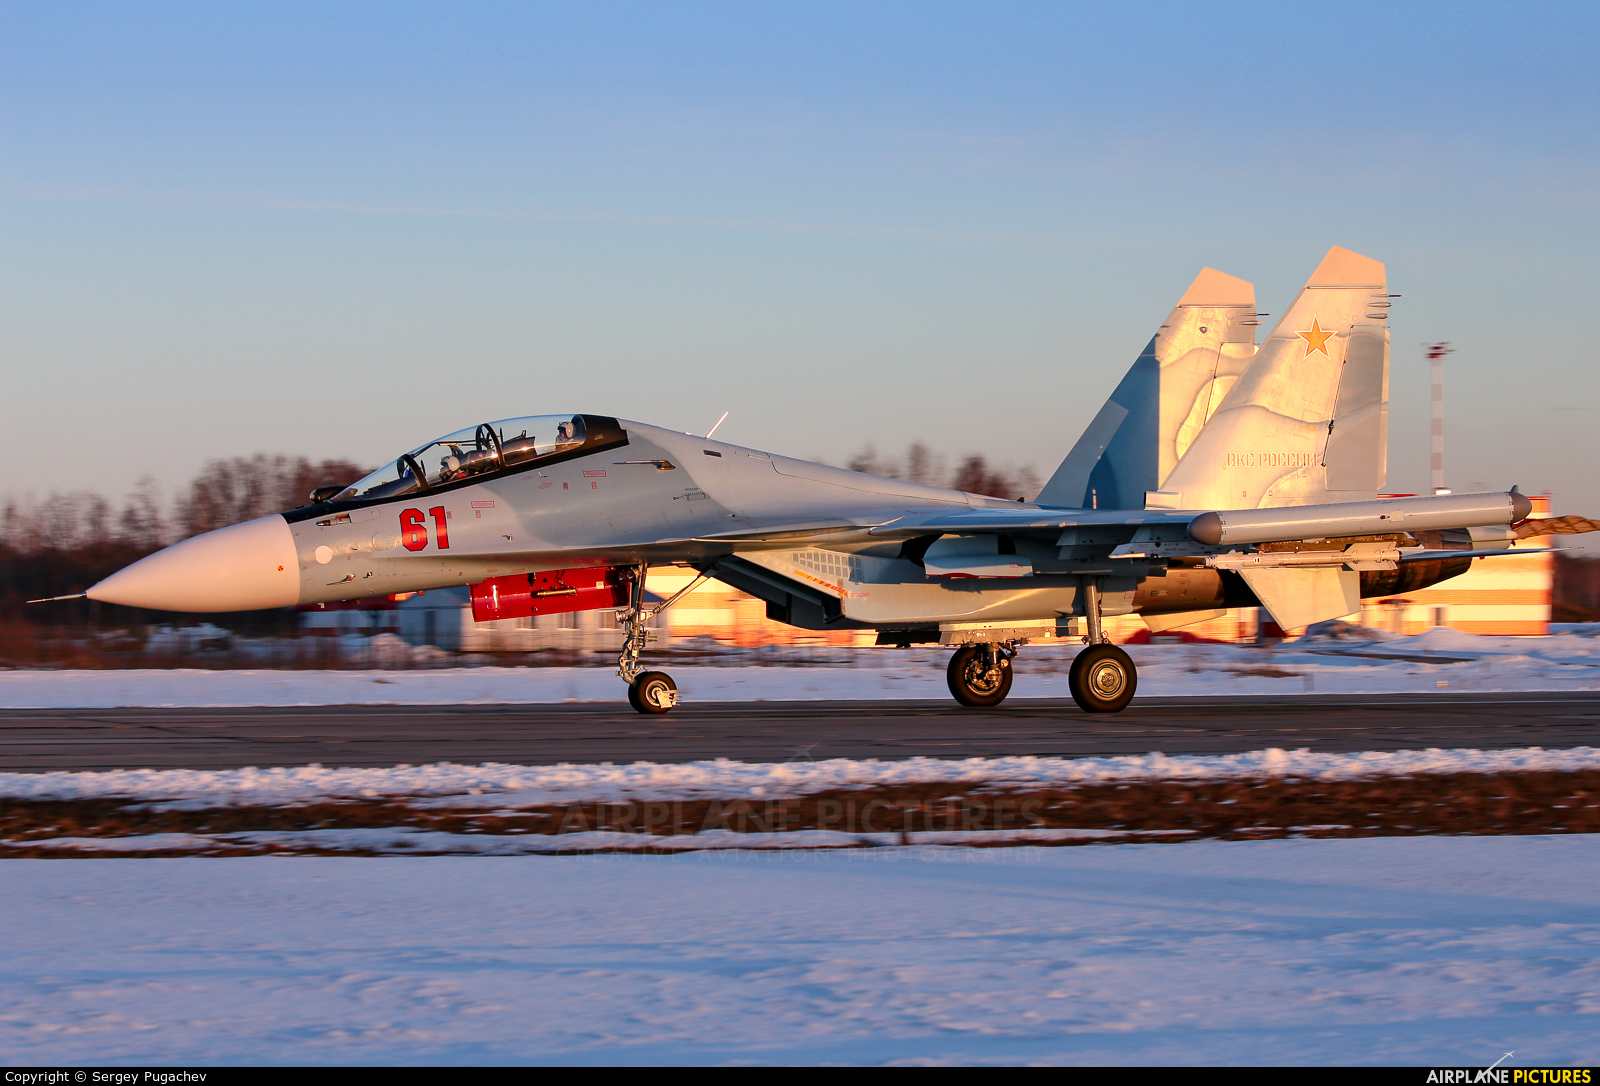 Russia - Air Force 61 aircraft at Undisclosed Location